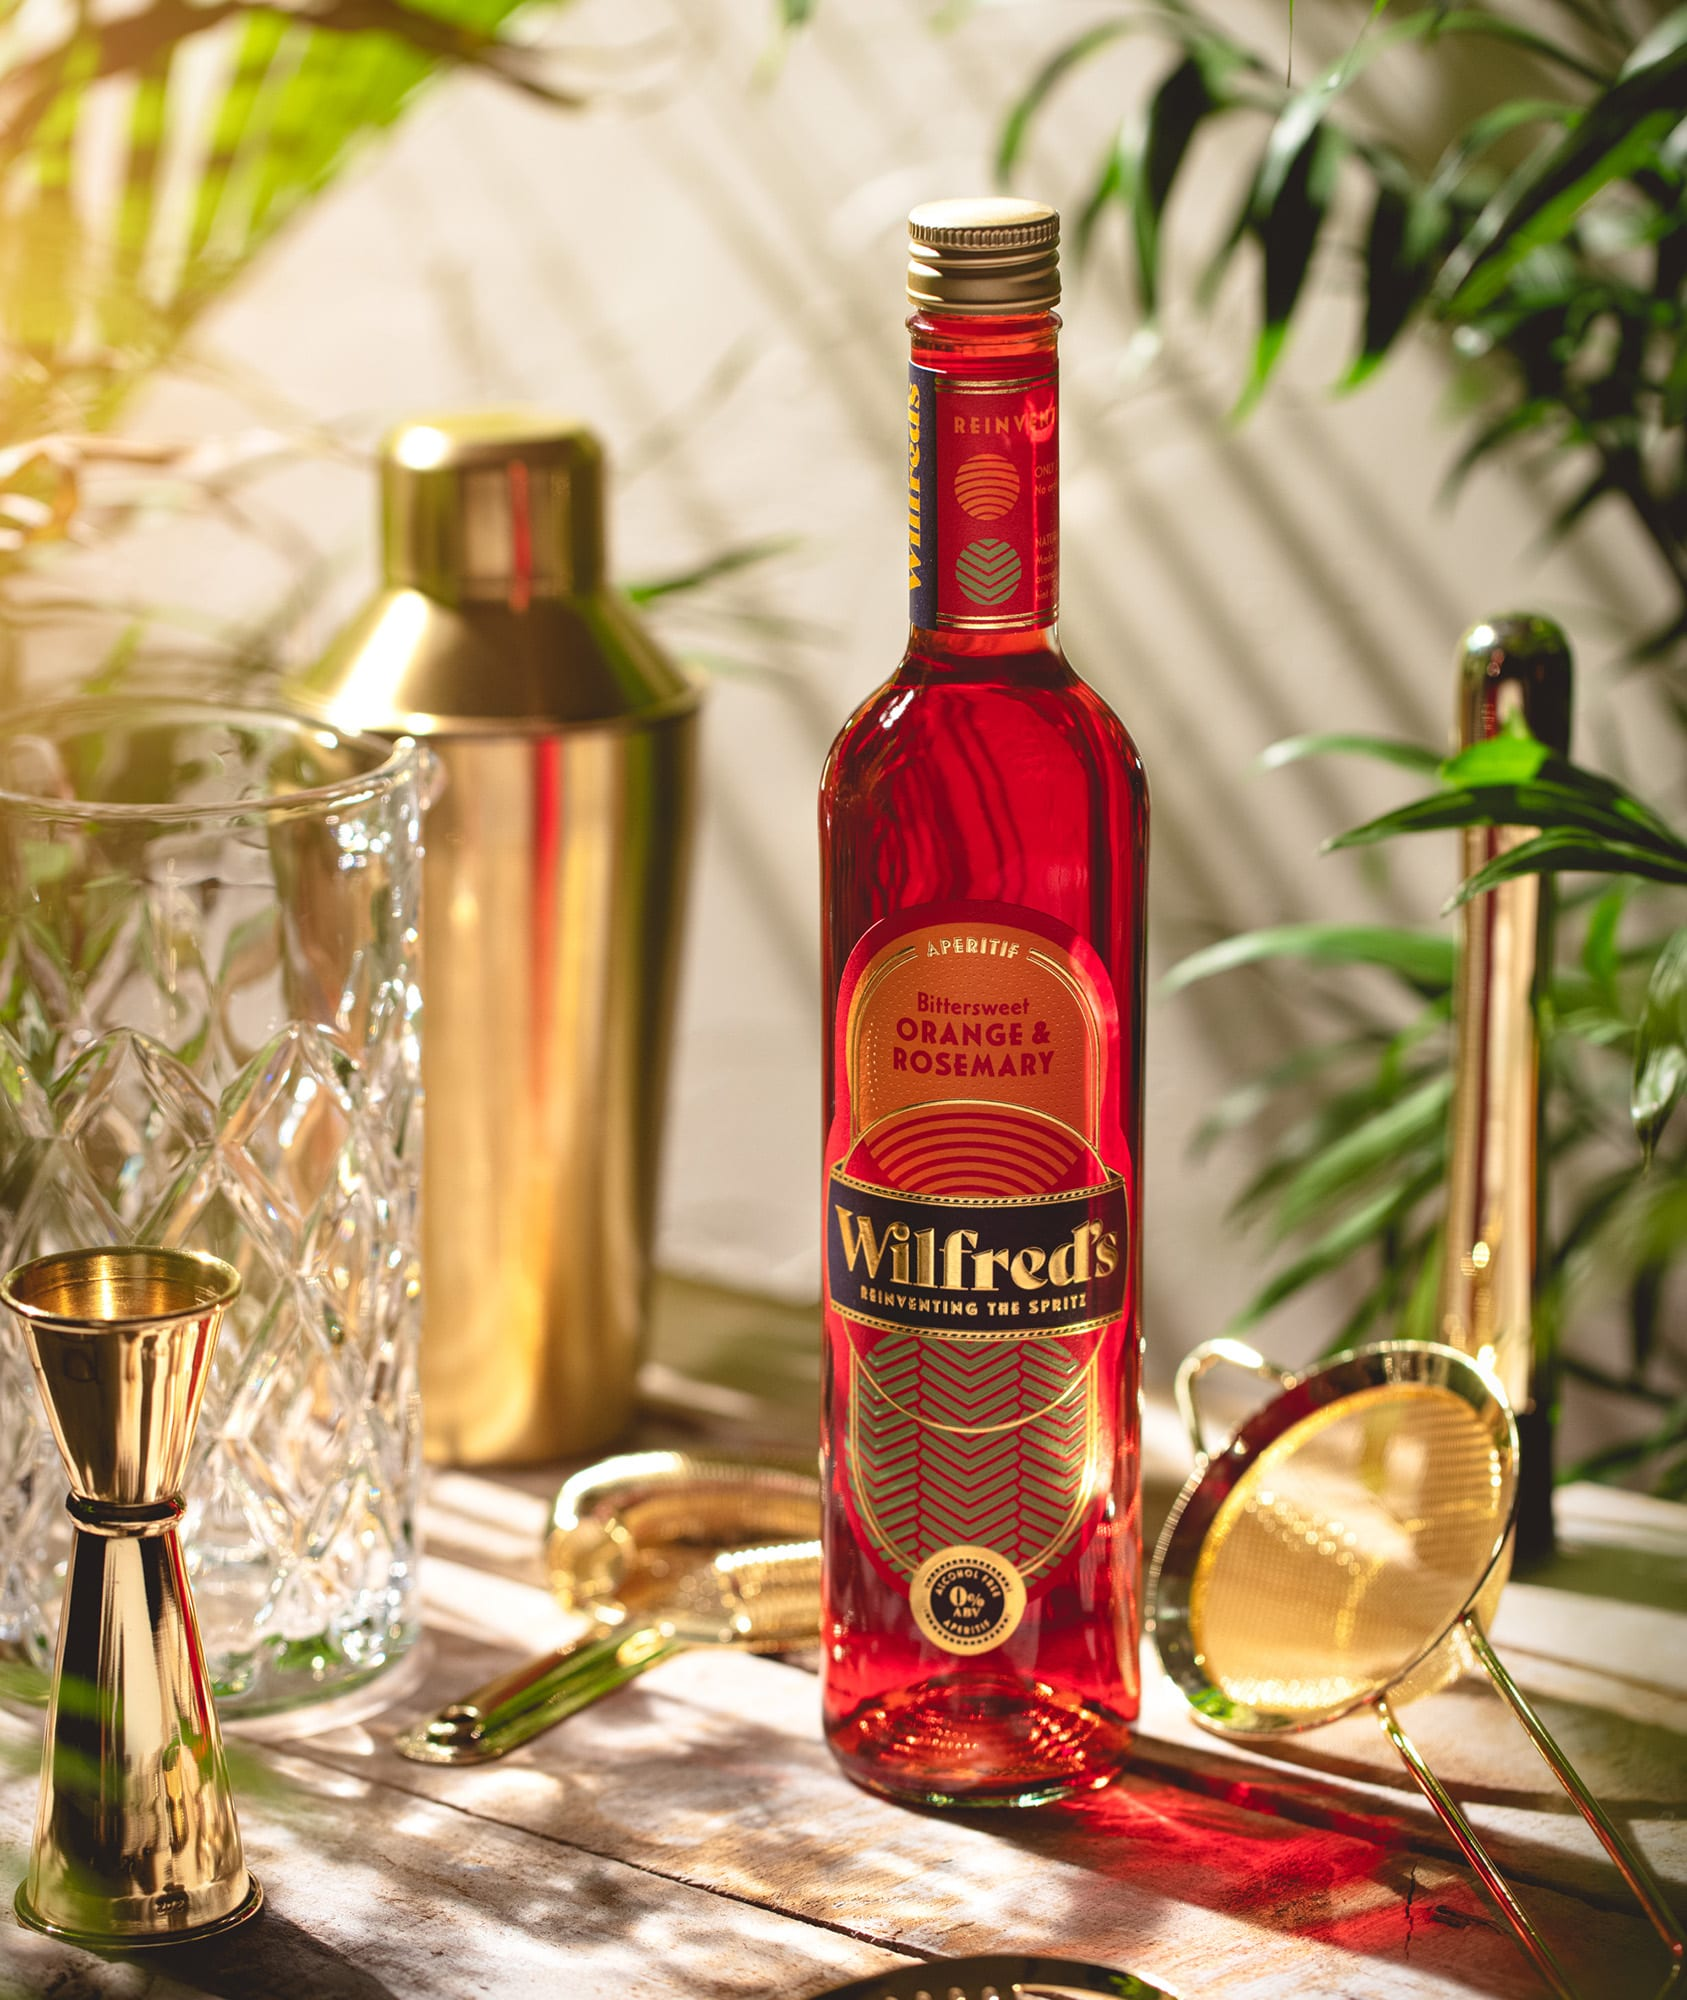 Wilfreds Aperitif Orange and Rosemary Branding by Kingdom and Sparrow